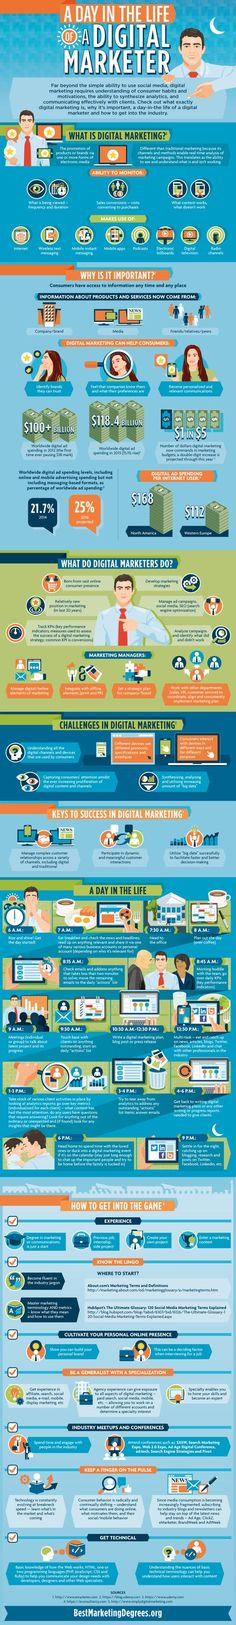 Infographic on digital marketing and what the job is like — but including some background on what it's like to do digital marketing as a blogger, too!